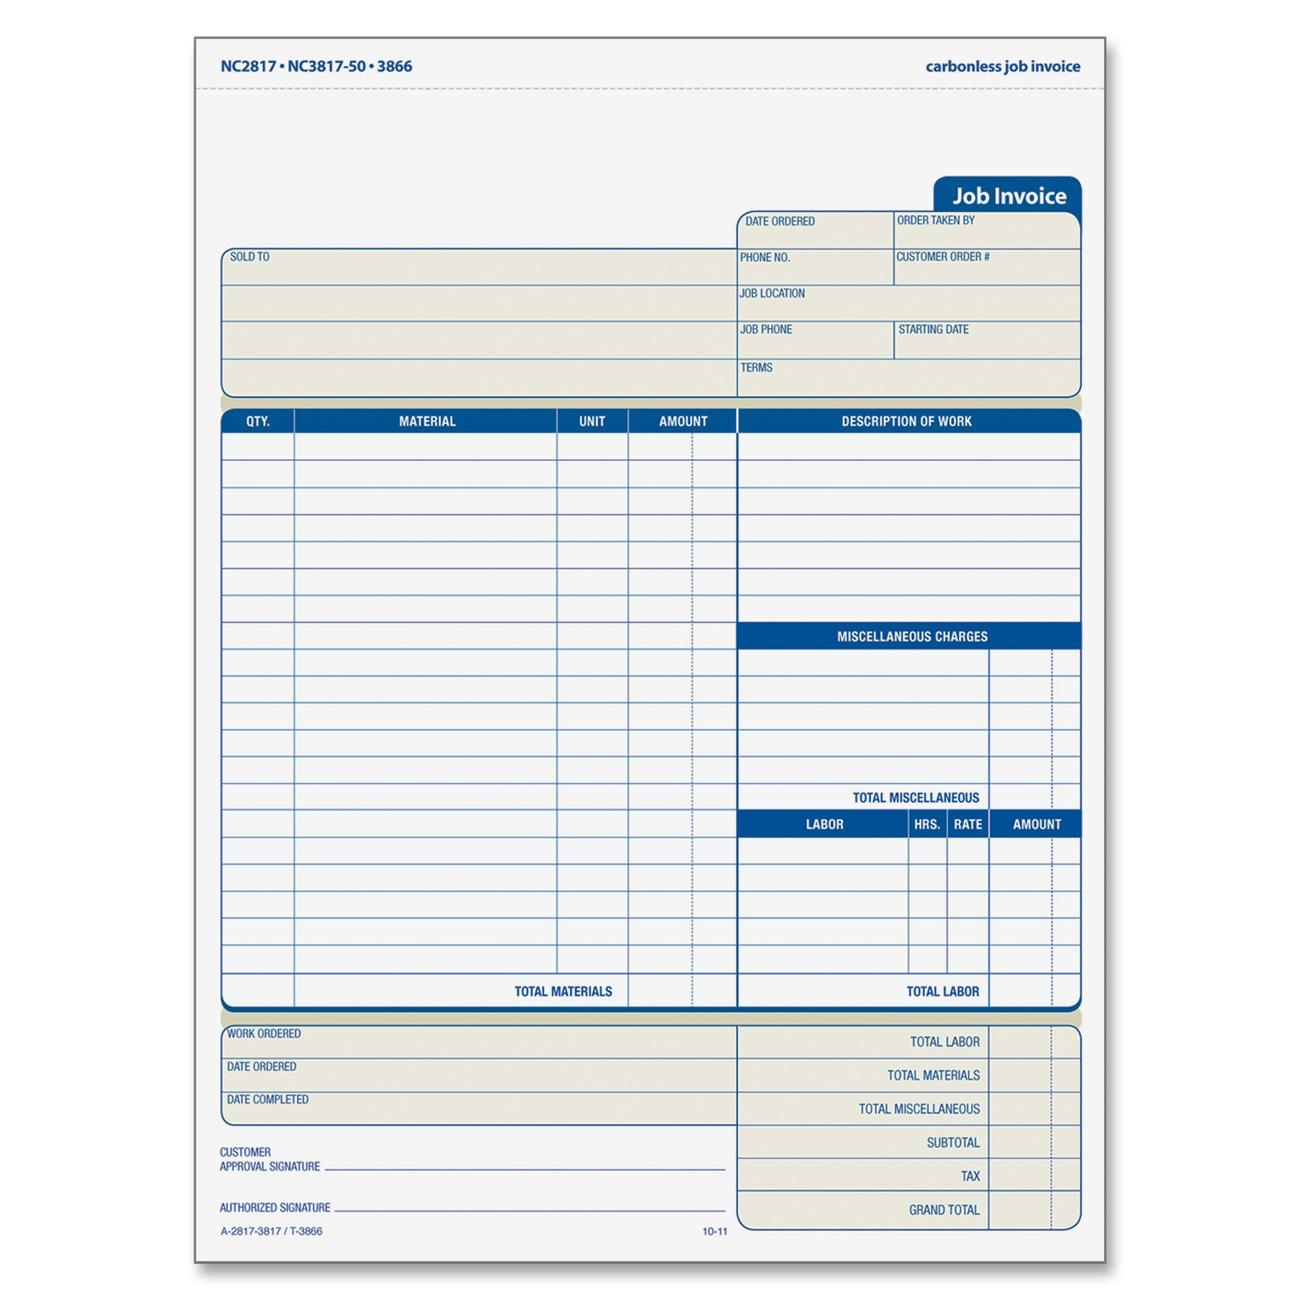 tops three part carbonless job invoice forms ld products. Black Bedroom Furniture Sets. Home Design Ideas